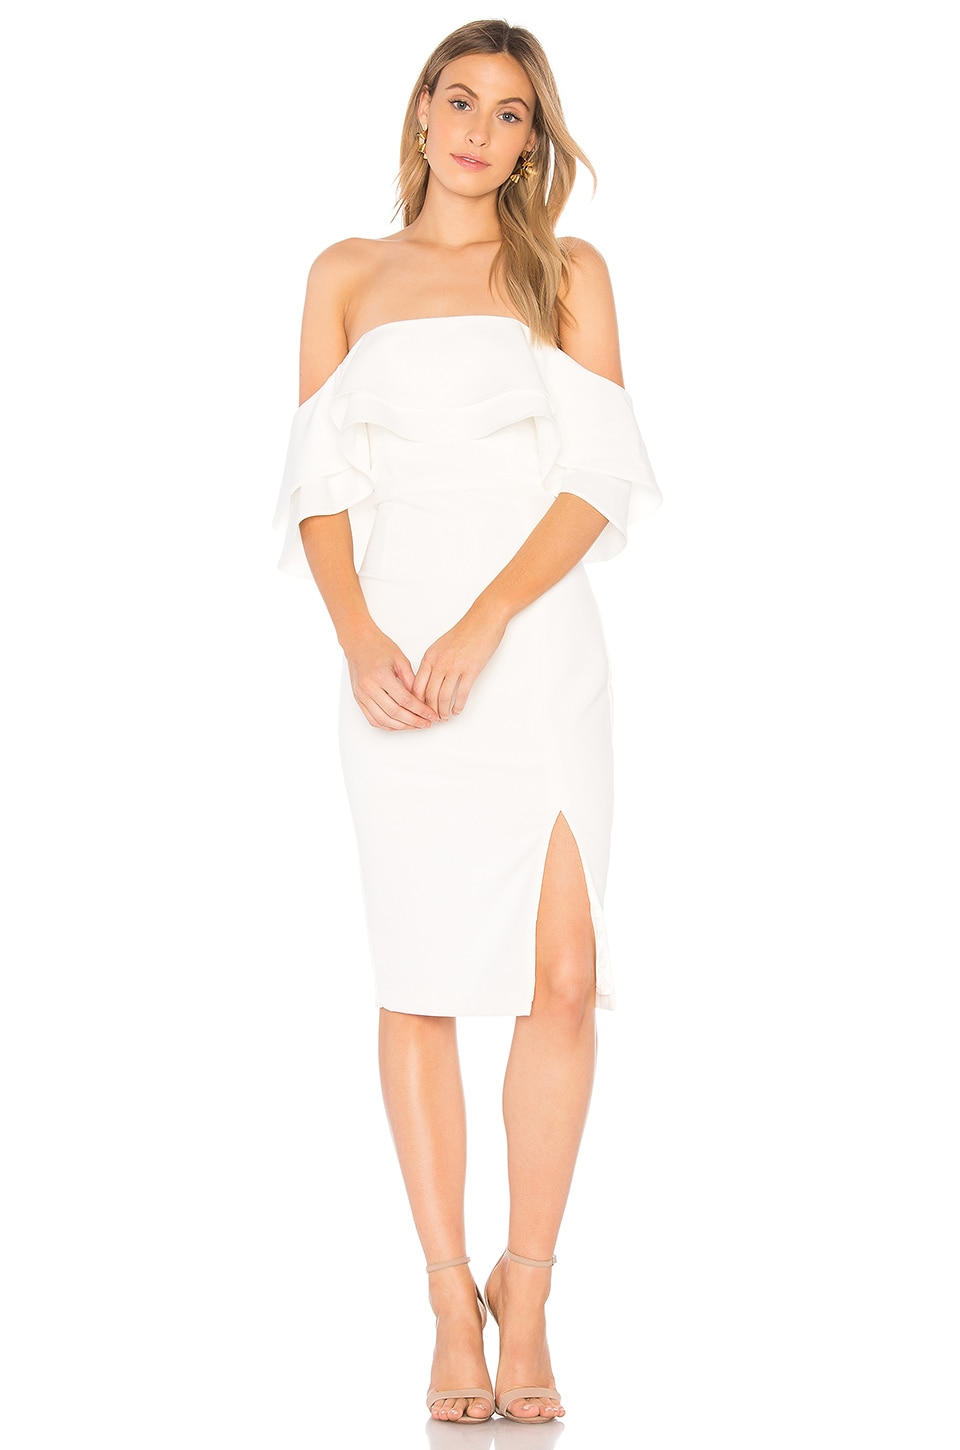 Bardot Band Dress in Ivory